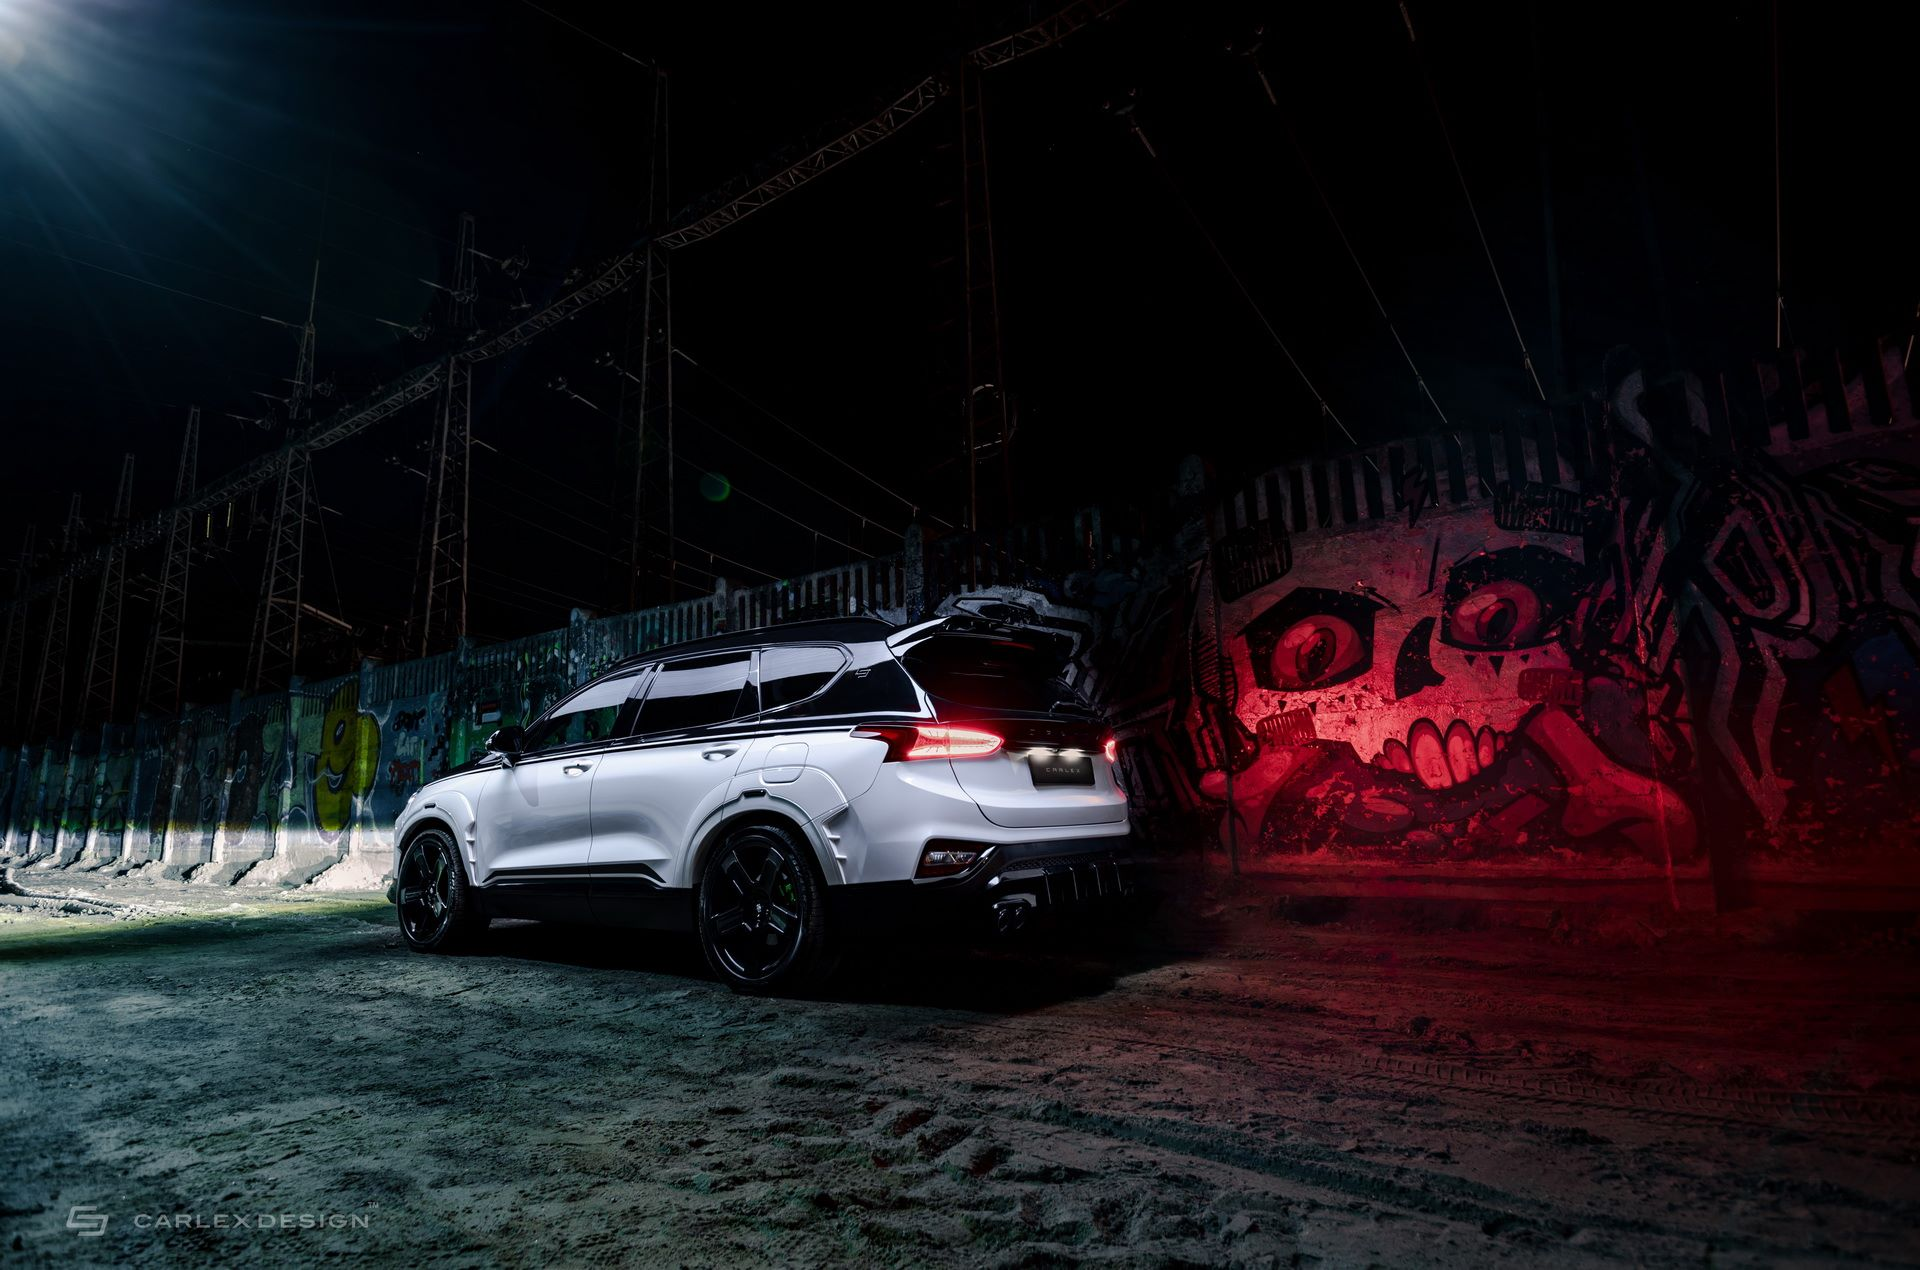 Hyundai-Santa-Fe-Urban-Edition-by-Carlex-Design-7